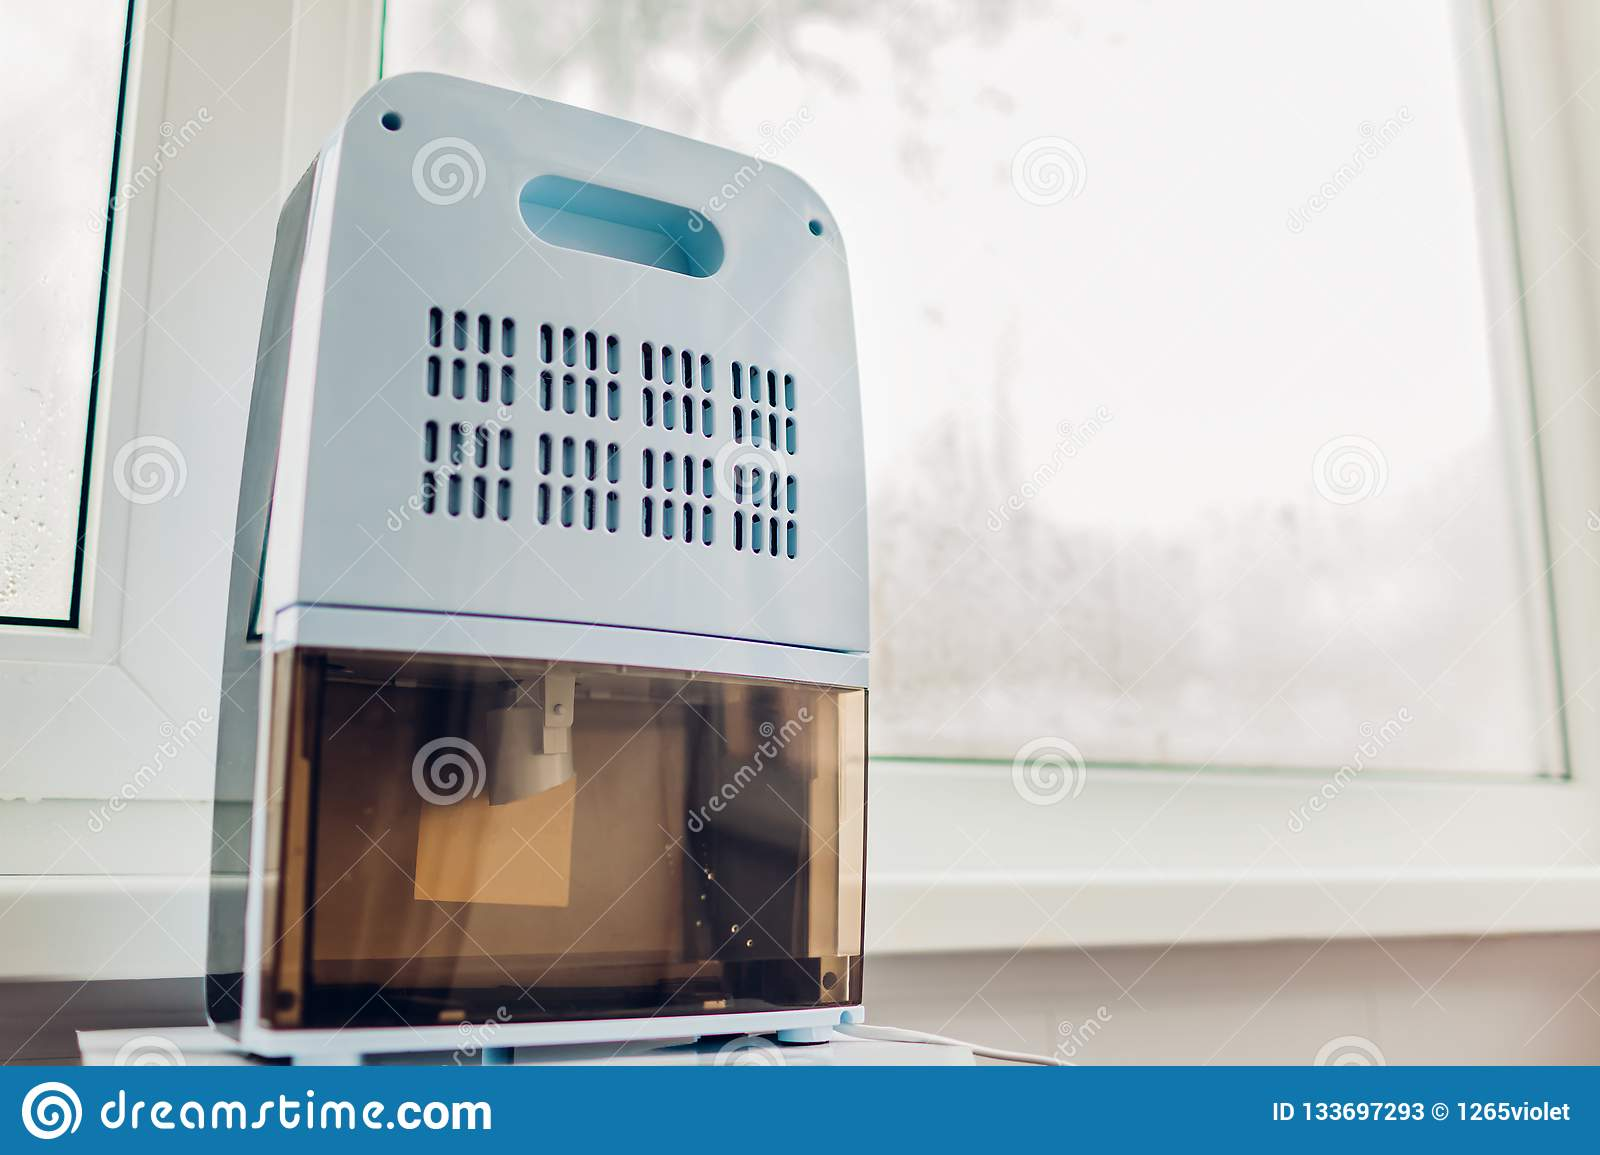 Dehumidifier with touch panel, humidity indicator, uv lamp, air ionizer, water container works by wet window